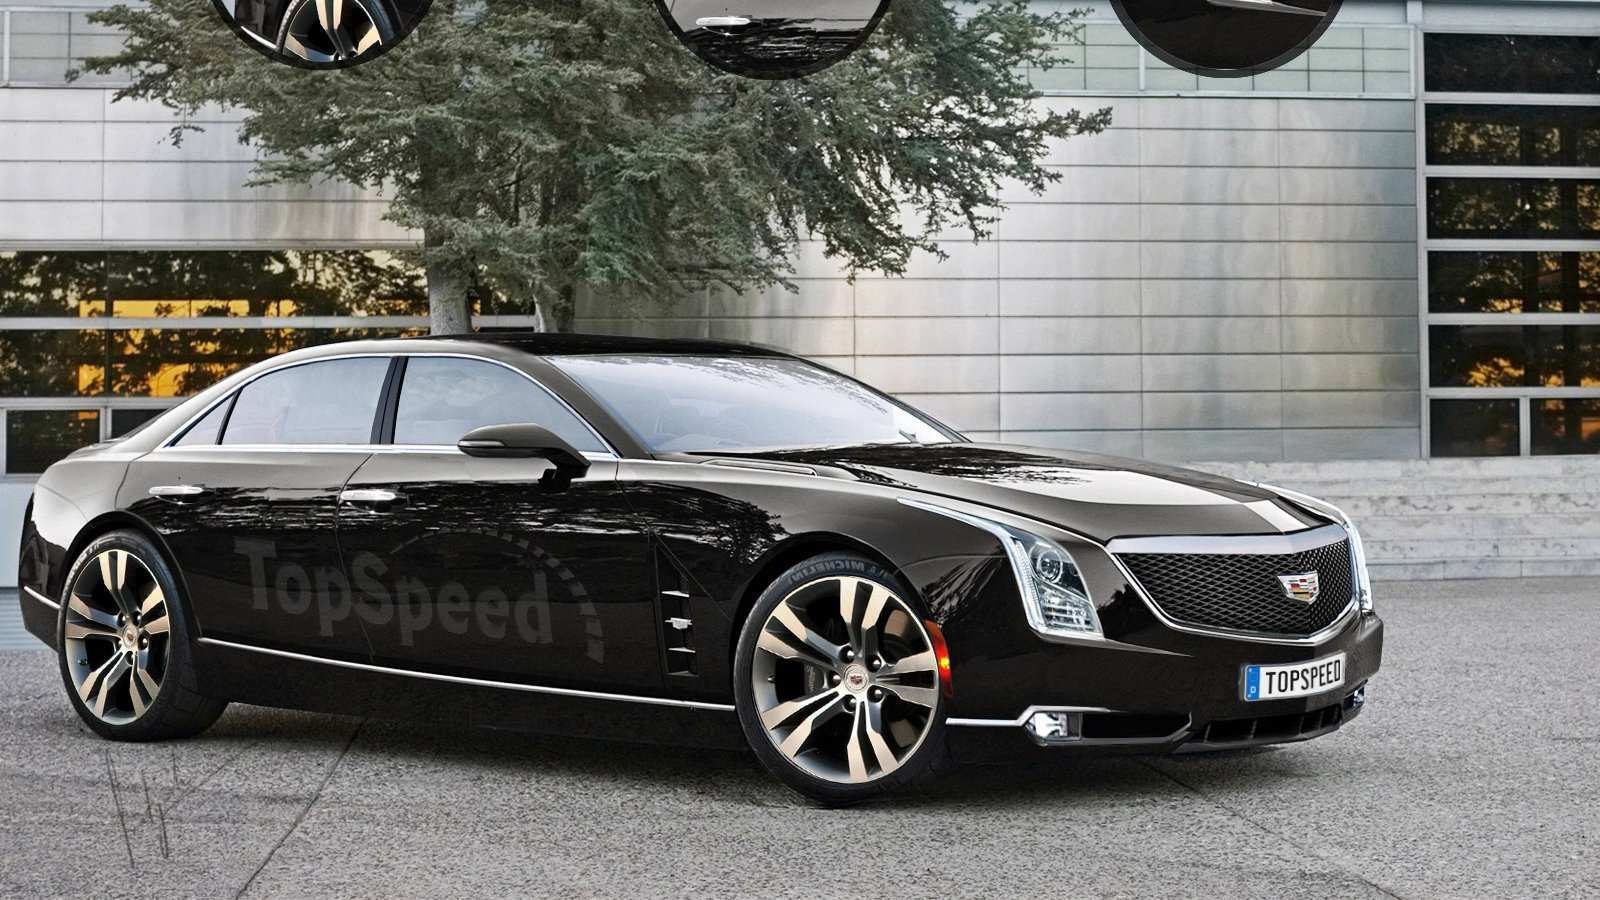 48 The Best 2020 Cadillac CT6 Spy Shoot